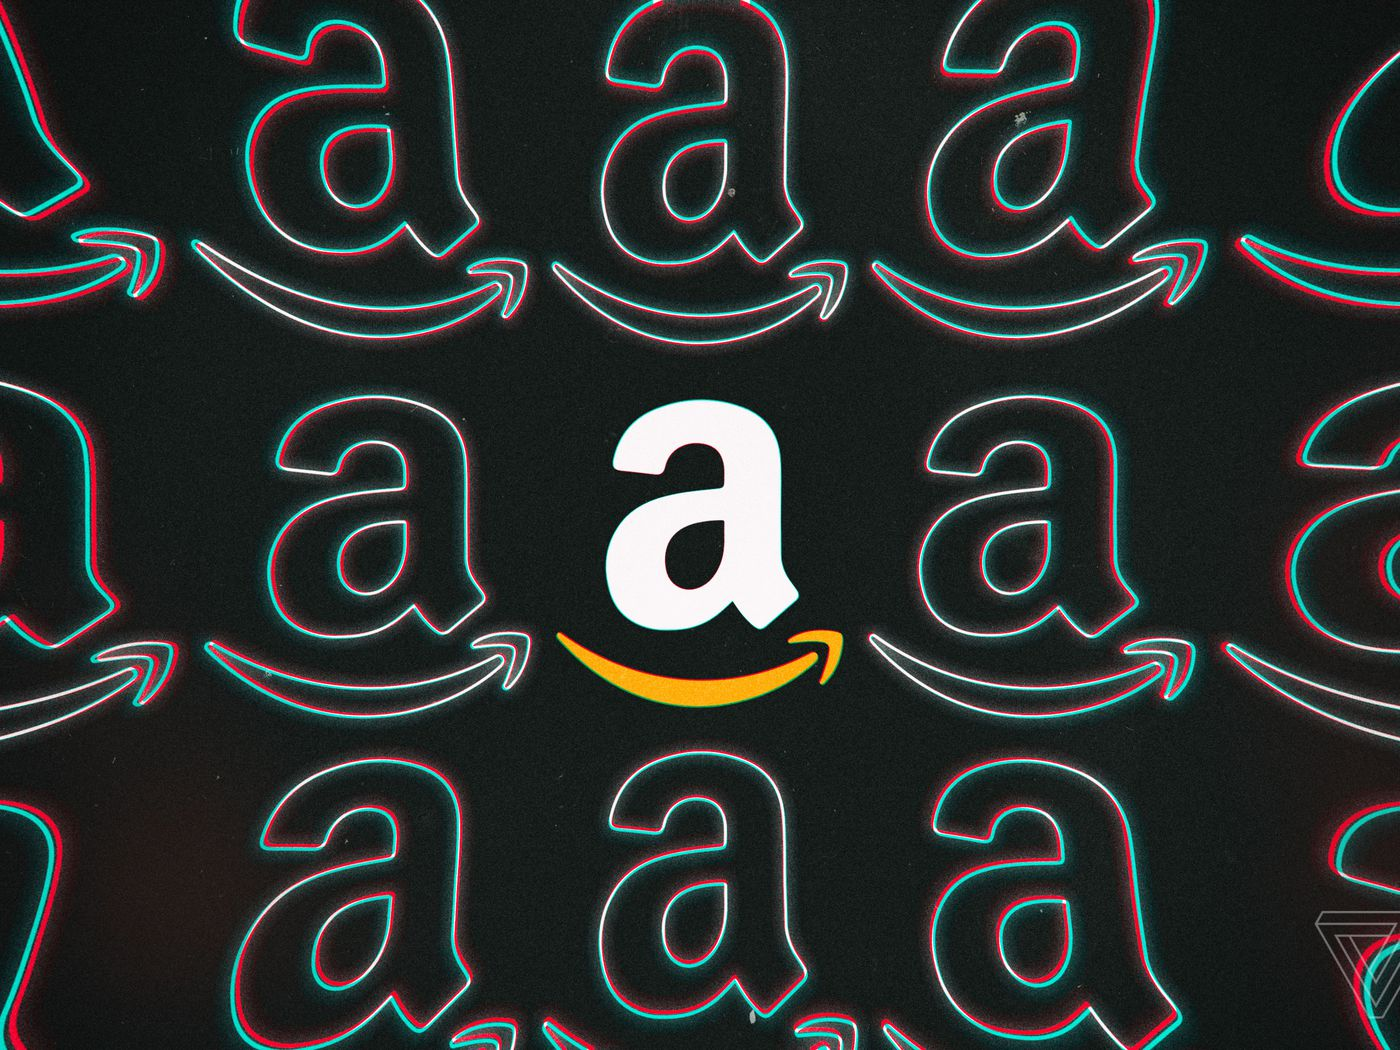 Amazon Prime Day 2020 How To Find The Best Tech Deals The Verge